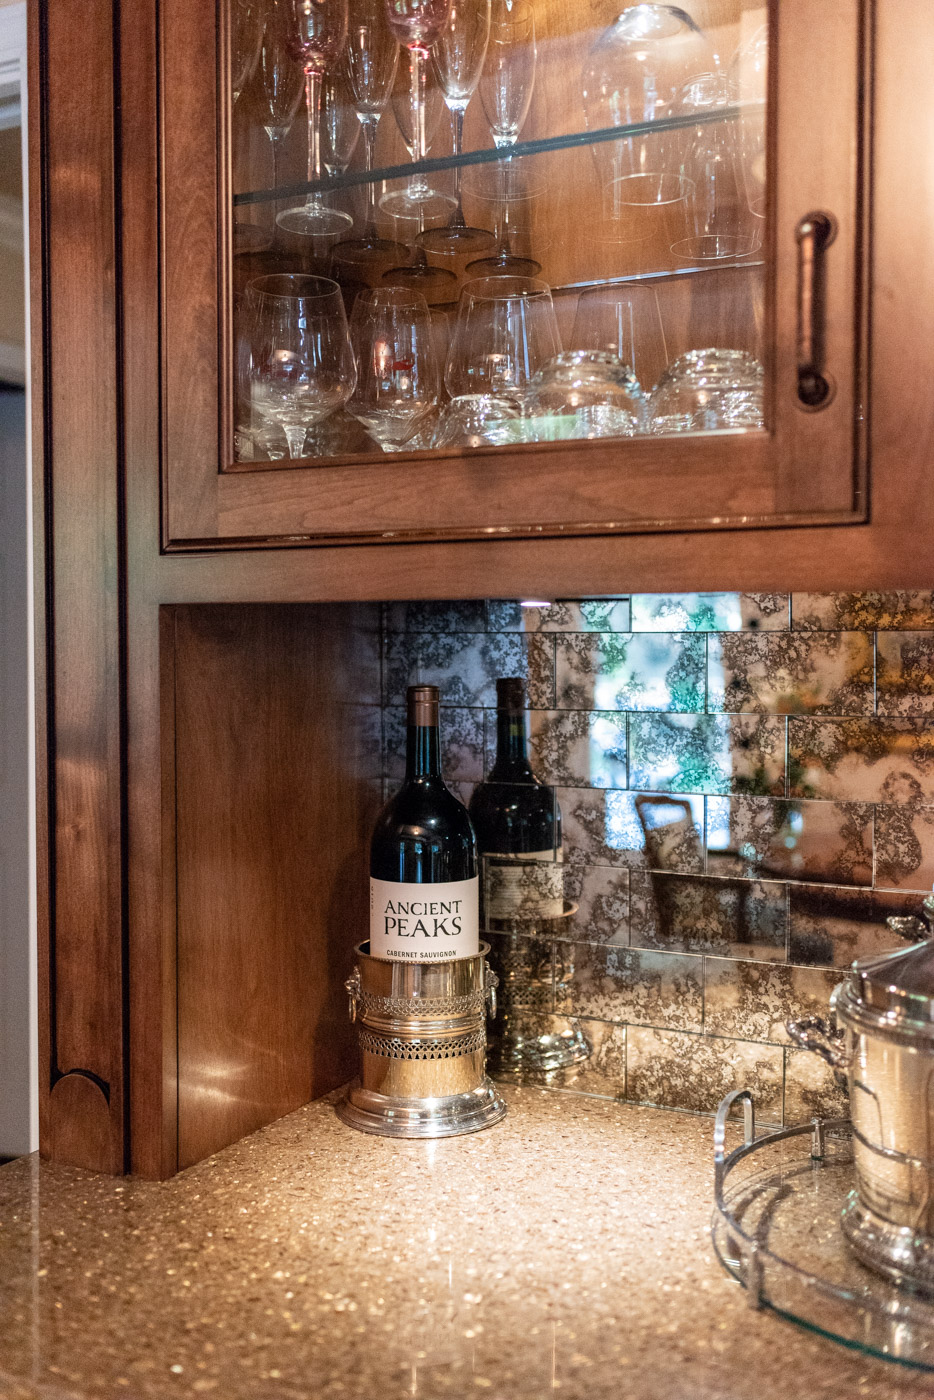 English Country custom home bar with glass display cabinets and quartz countertop